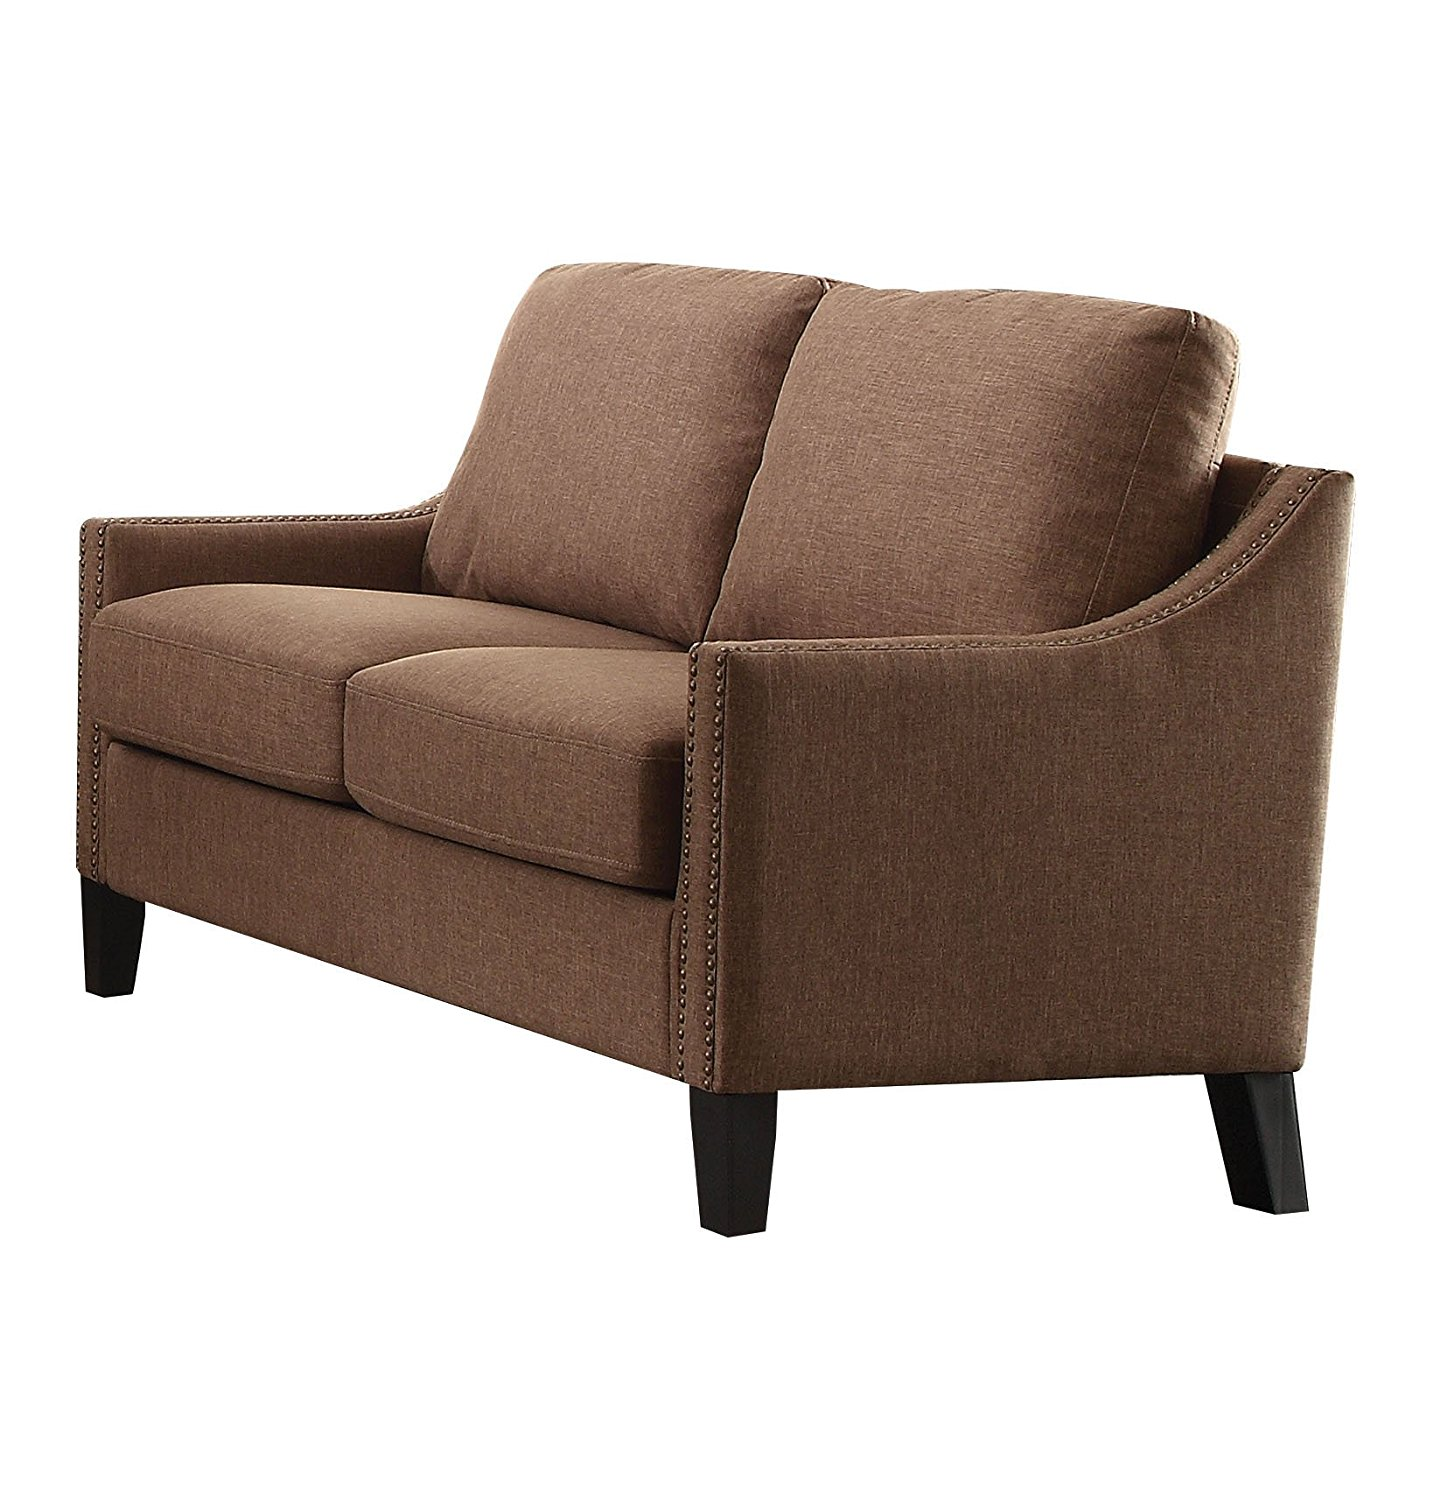 Loveseat, Brown Linen - Fabric, Wood Frame, Foam  Brown Linen